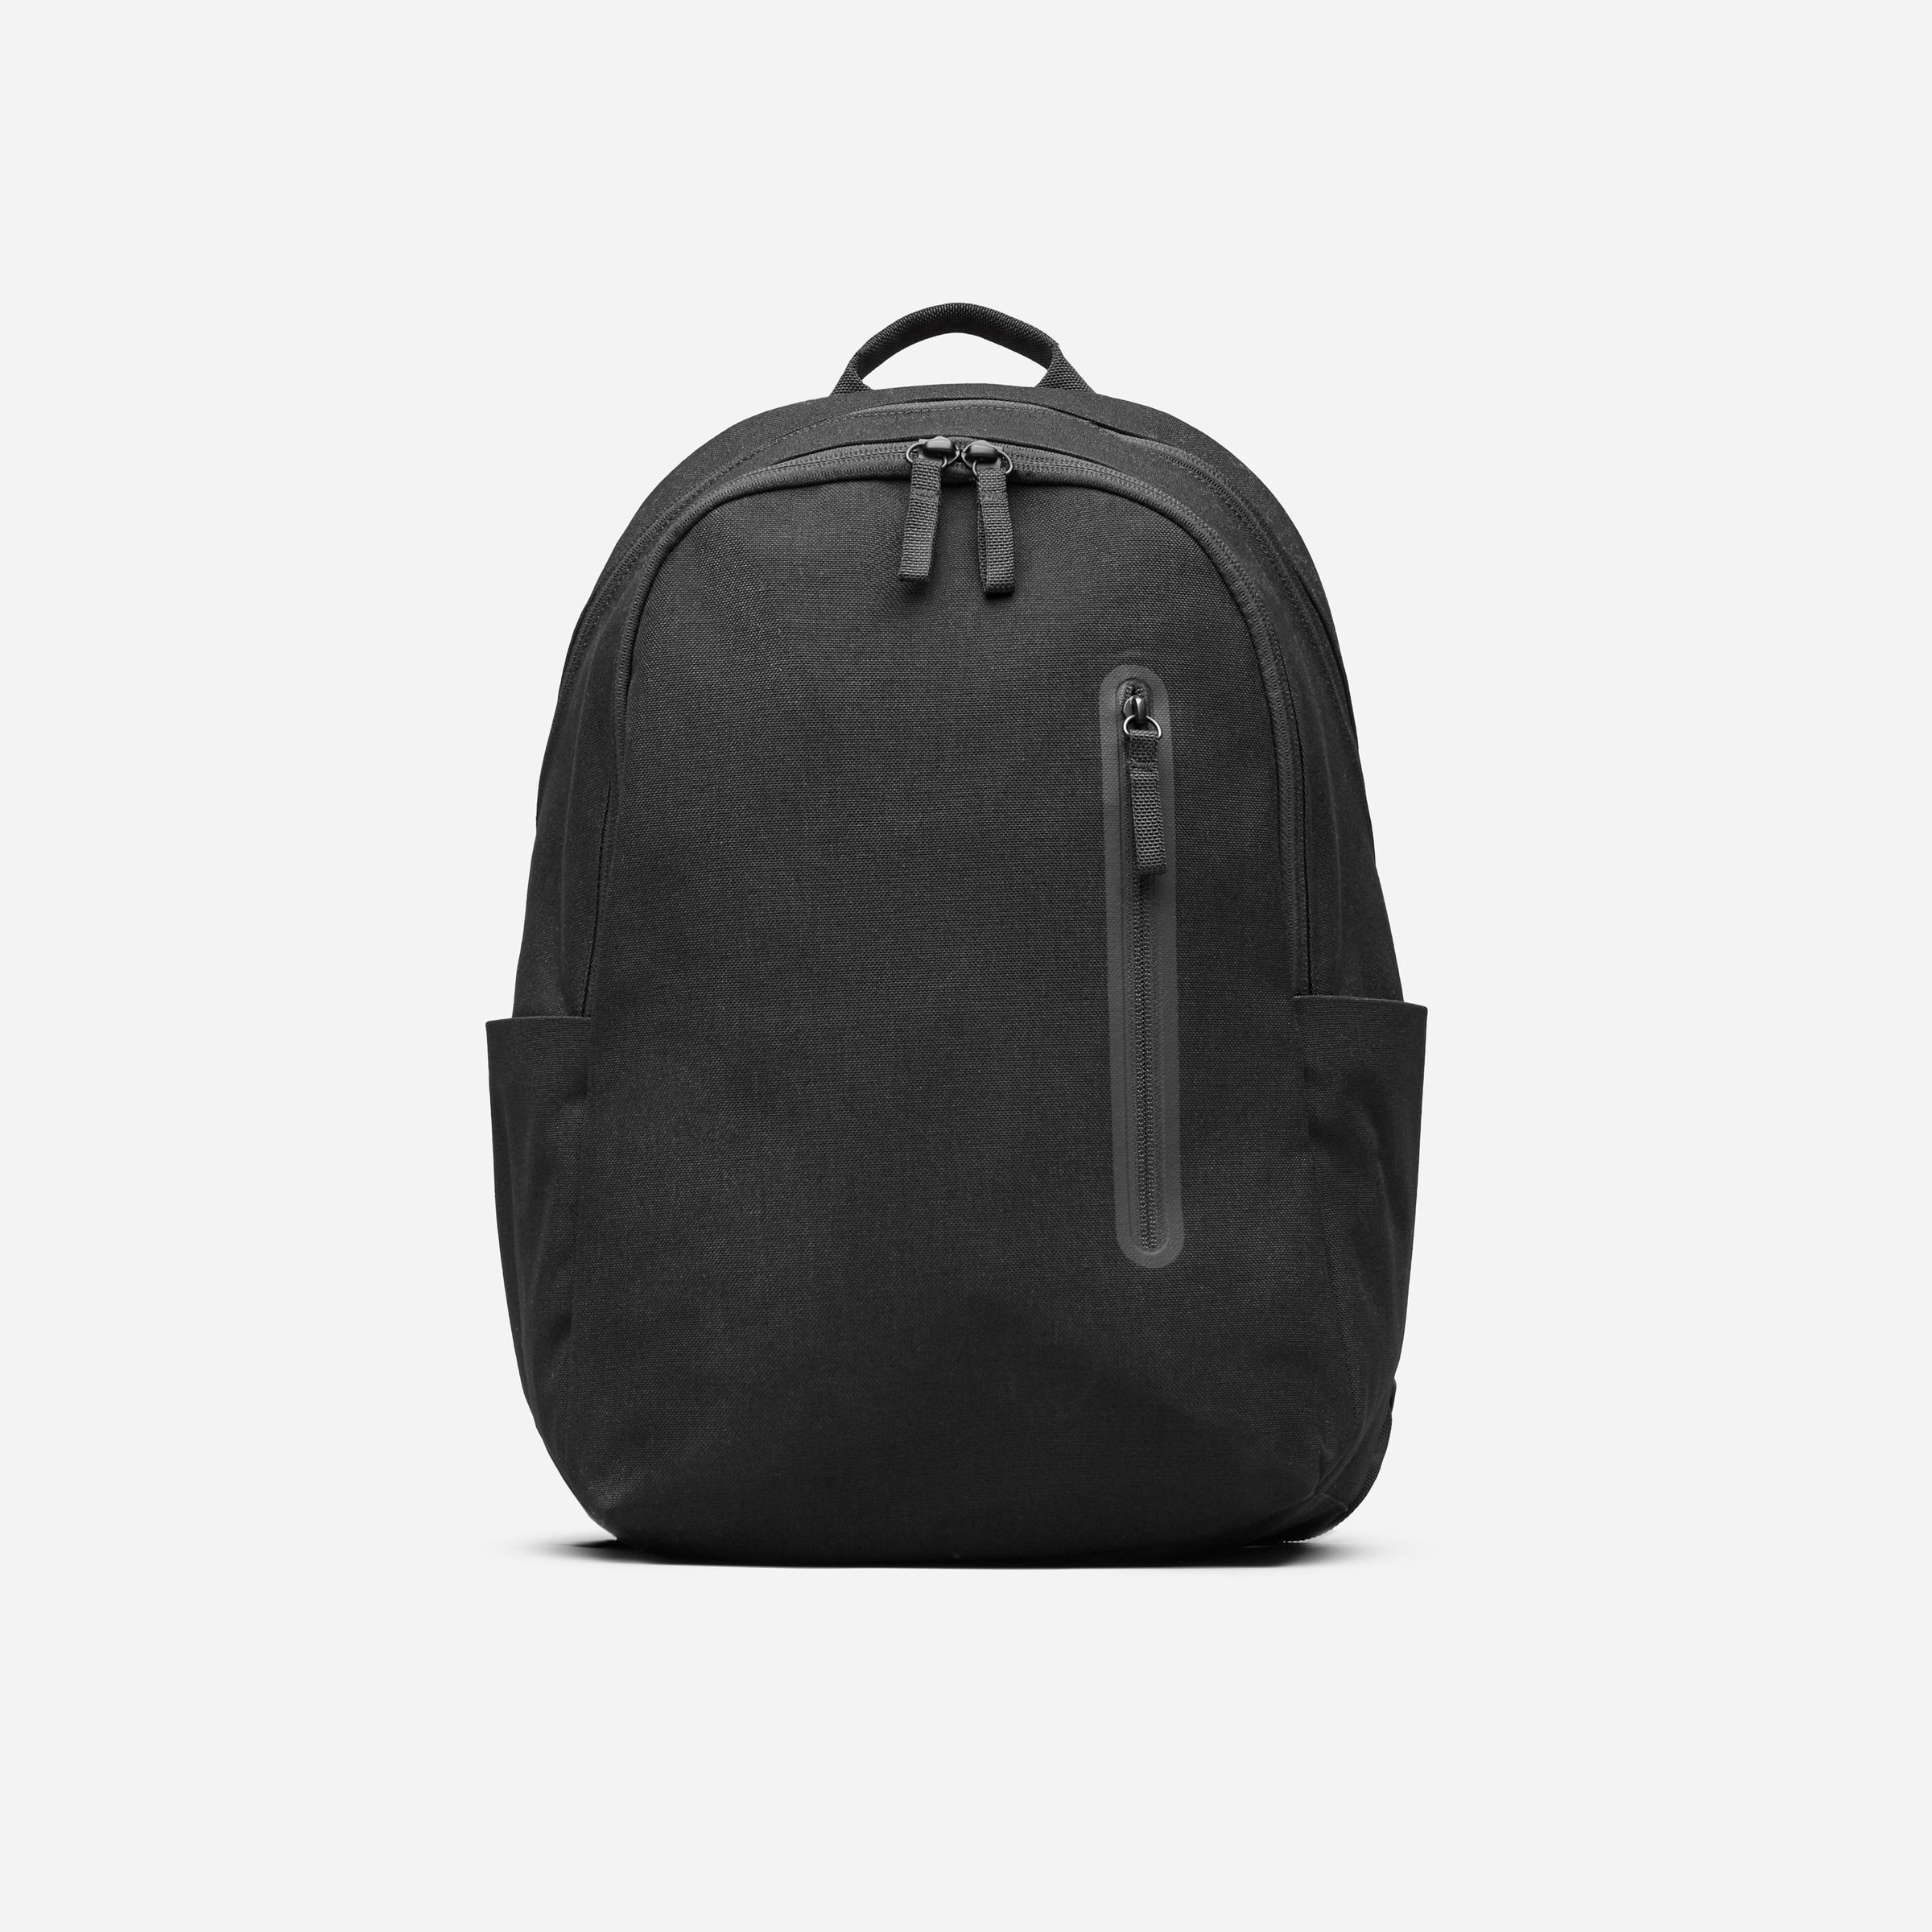 93b8b87f8ca4 Our Modern Commuter Backpack—now even more durable. Made of durable nylon  bonded with a TPE backing for water resistance